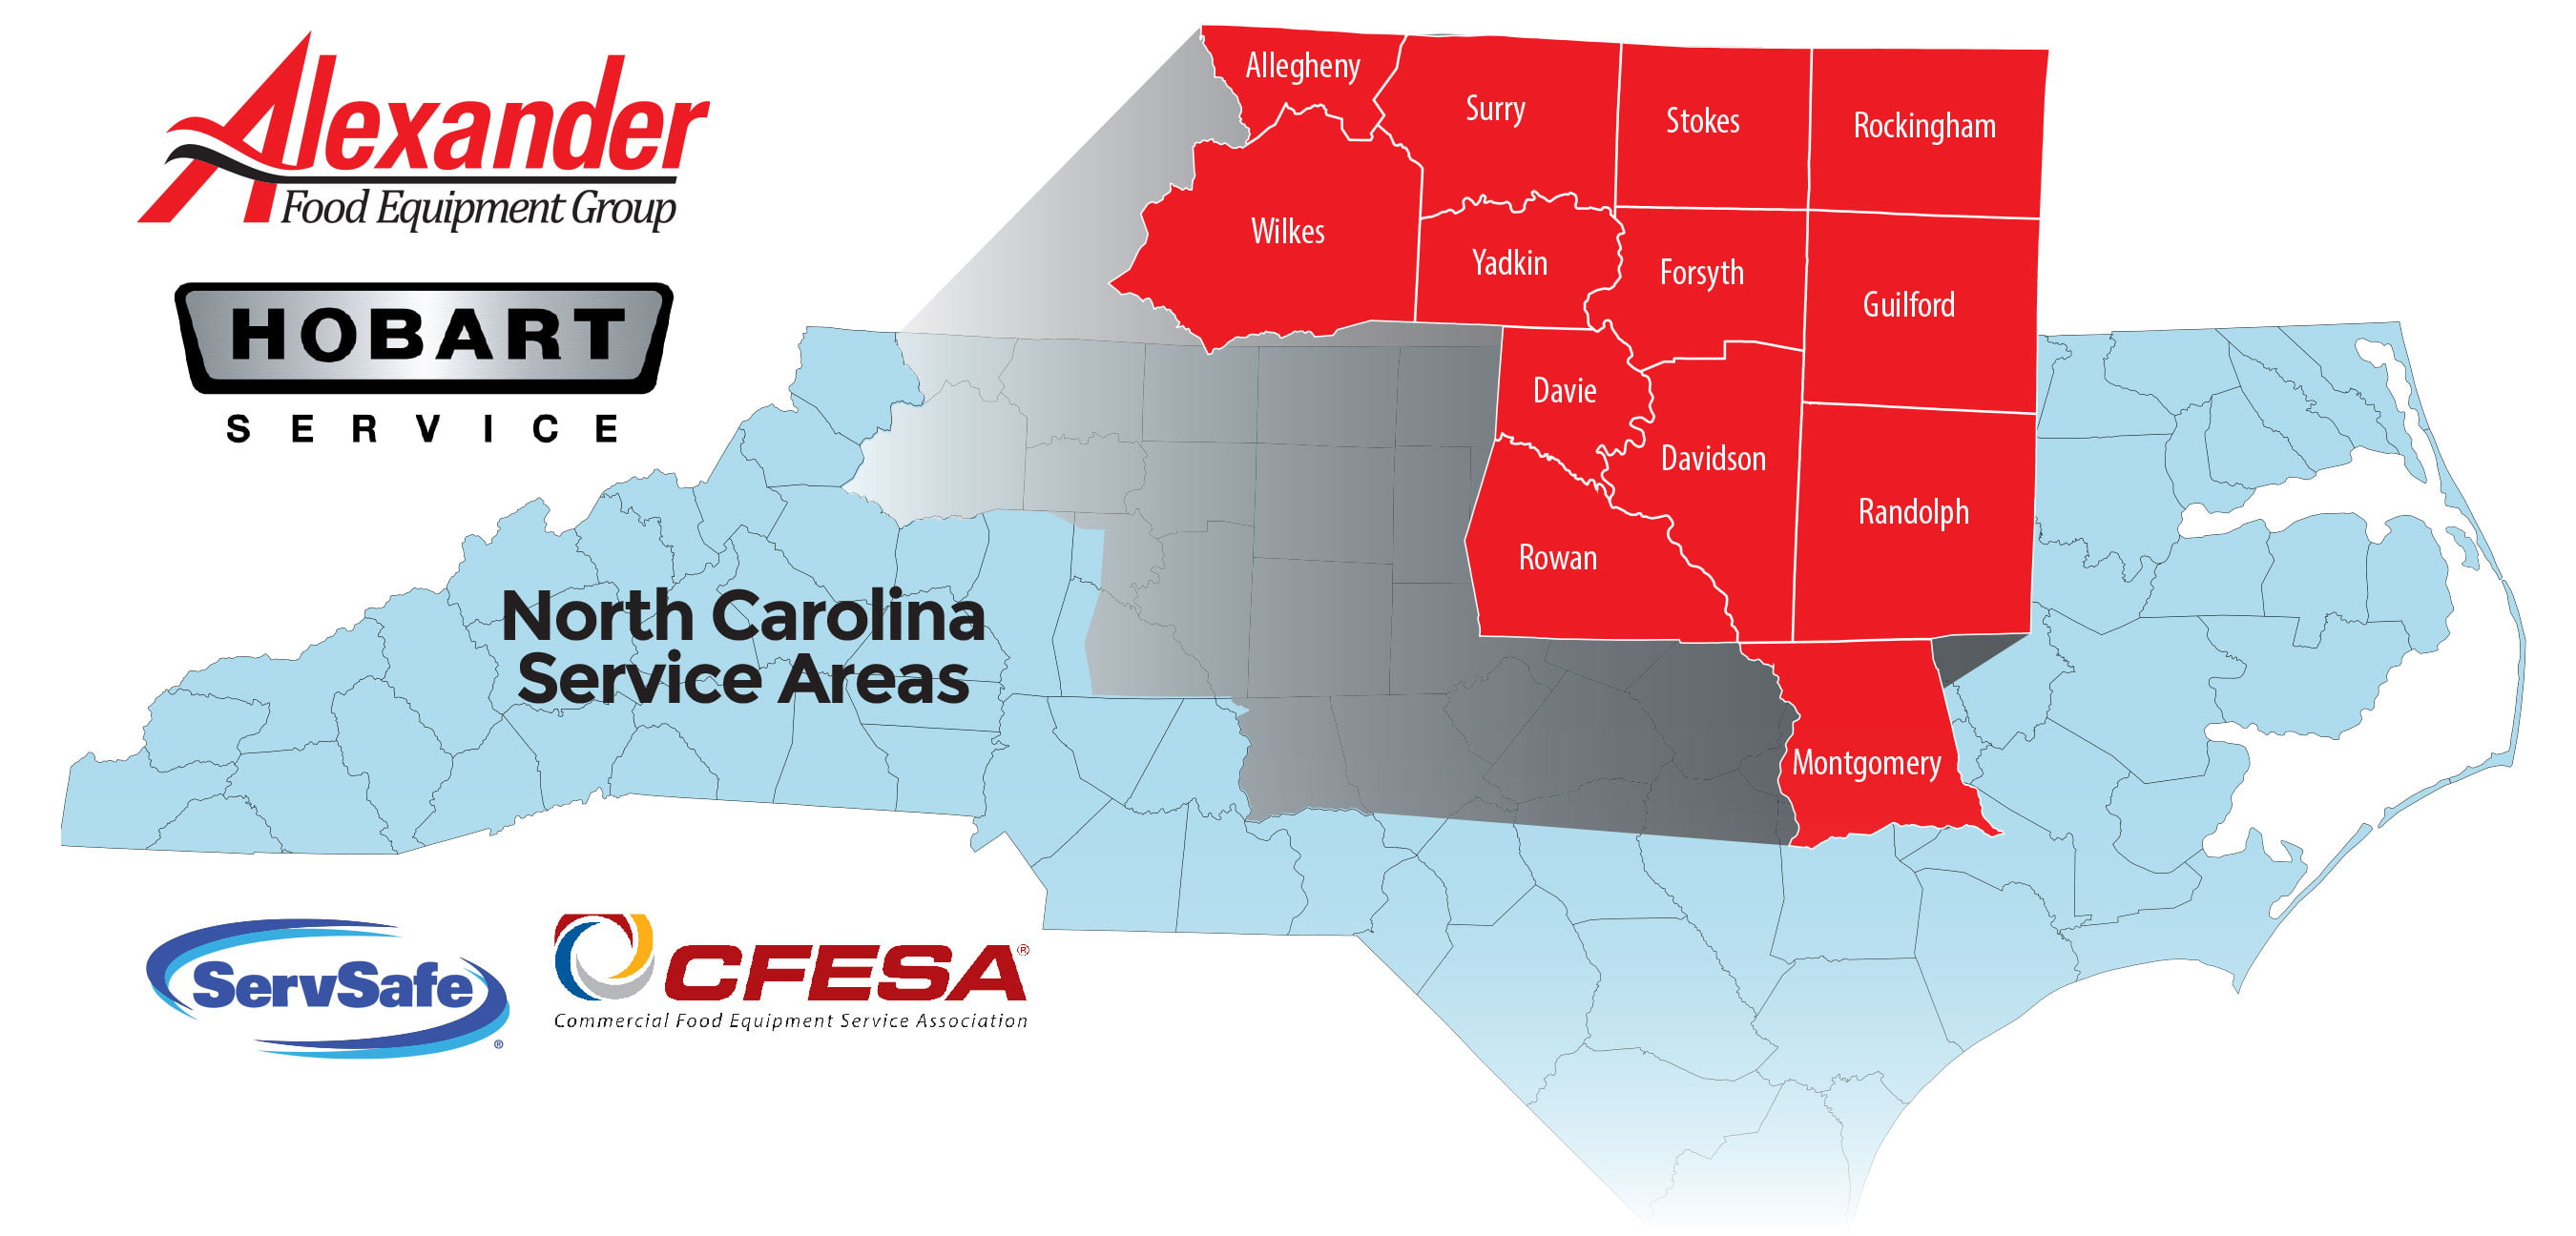 Alexander Food Equipment Group Service Area in The Piedmont Triad